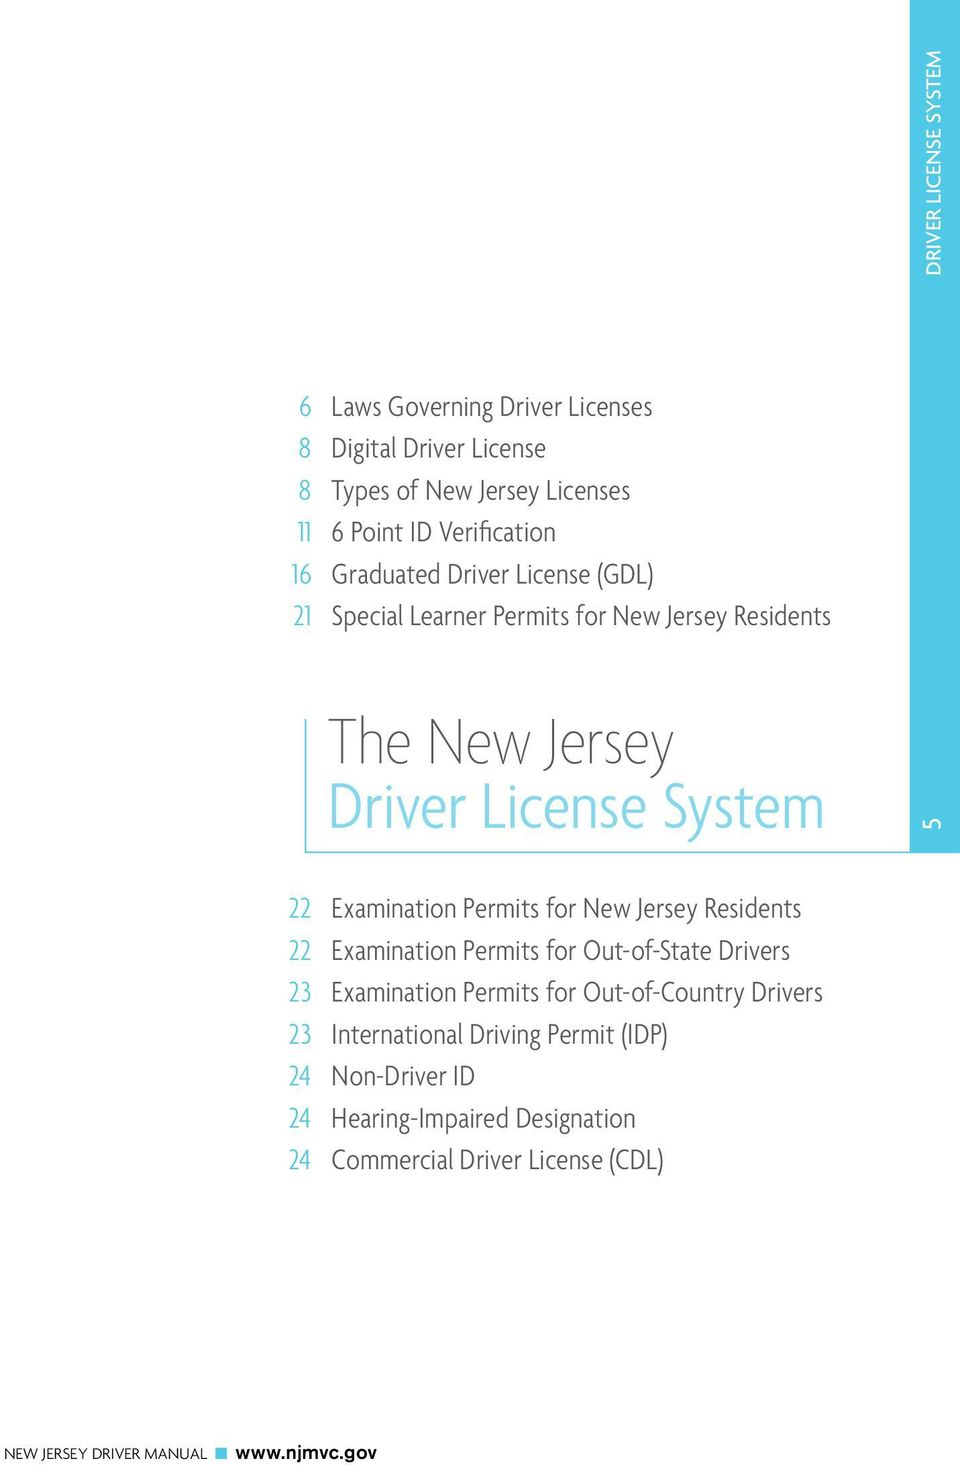 24 24 24 Examination Permits for New Jersey Residents Examination Permits for Out-of-State Drivers Examination Permits for Out-of-Country